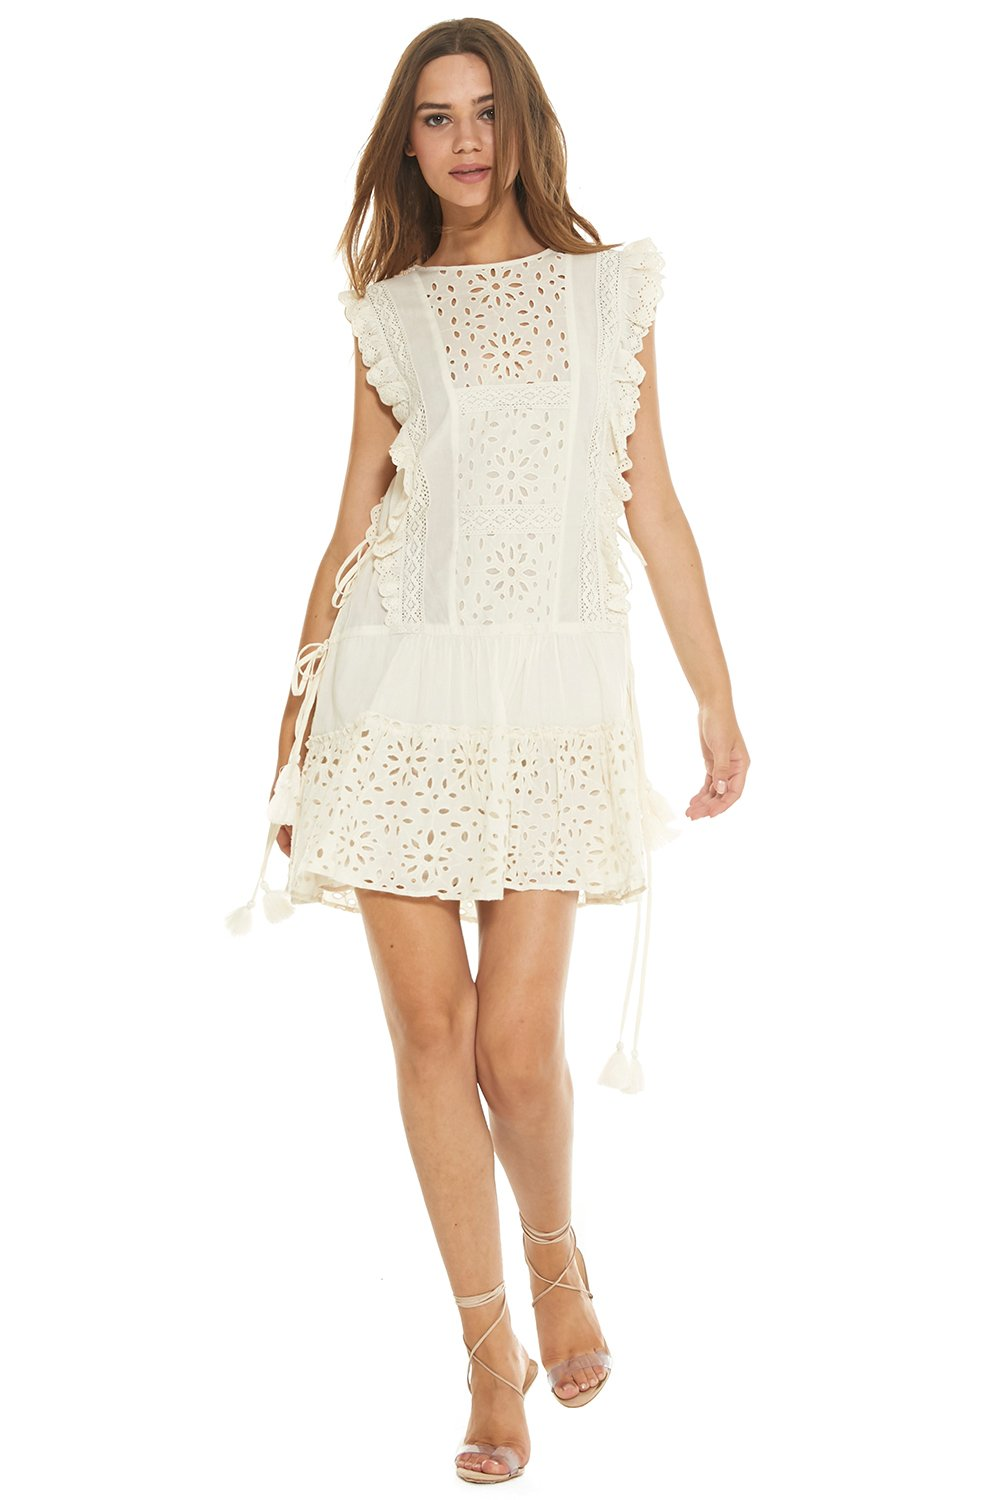 MISA - Marieta Dress / $370.00We all love a good white eyelet mini dress in the summer. With the tassel belt and loose fit, this breezy choice is a no-brainer.